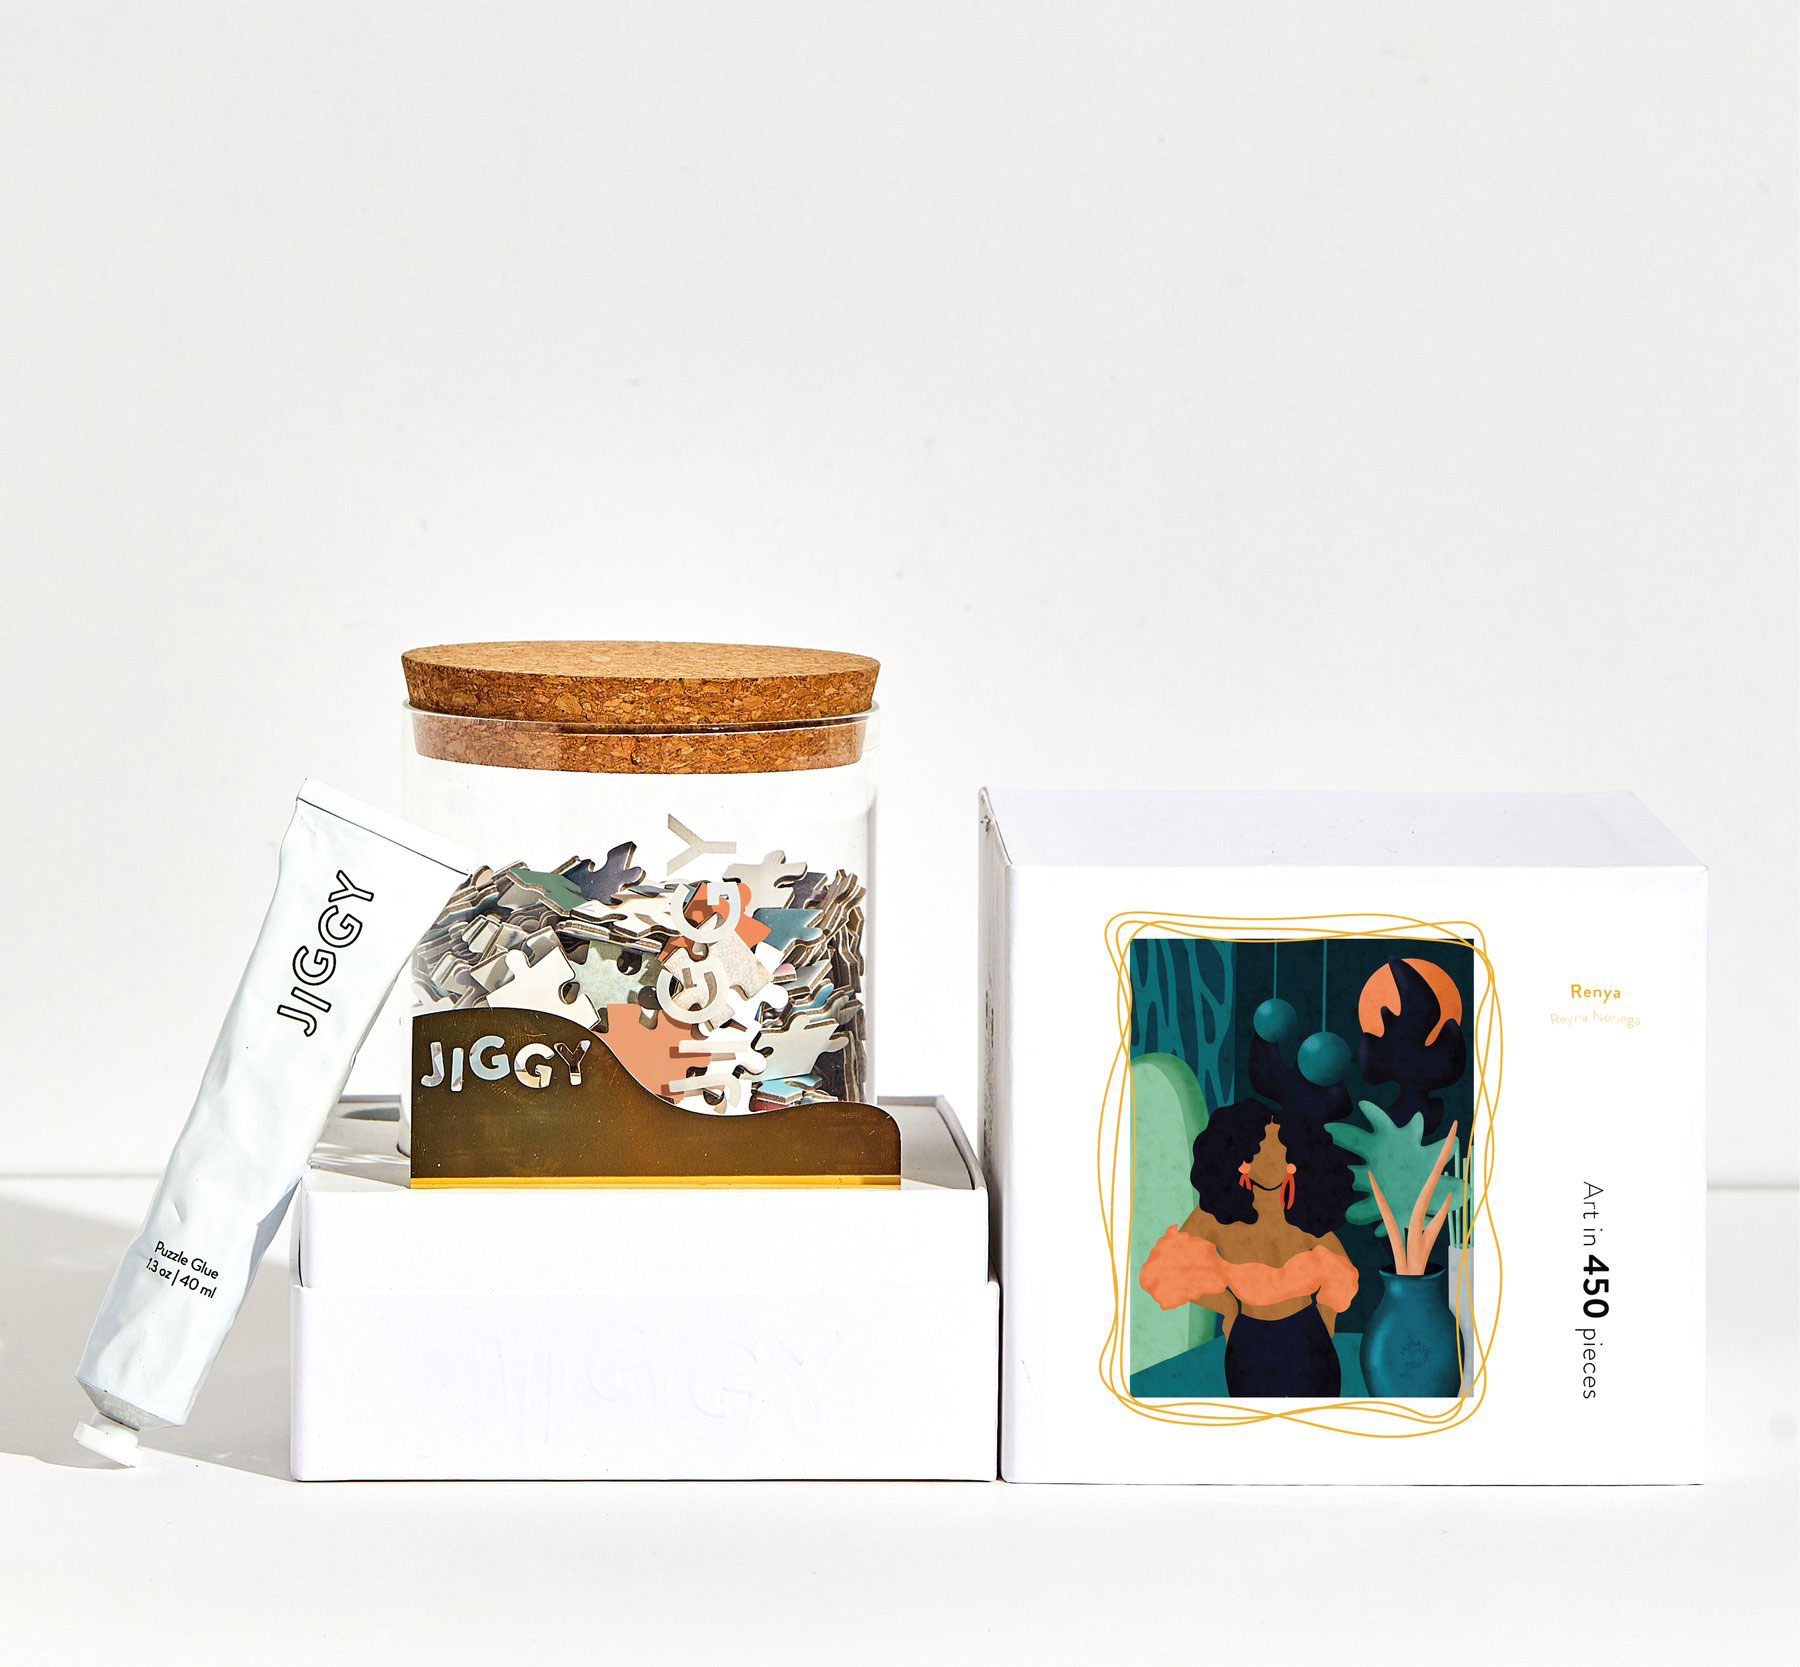 Best gifts, gift ideas for women - Jiggy Reyna puzzle